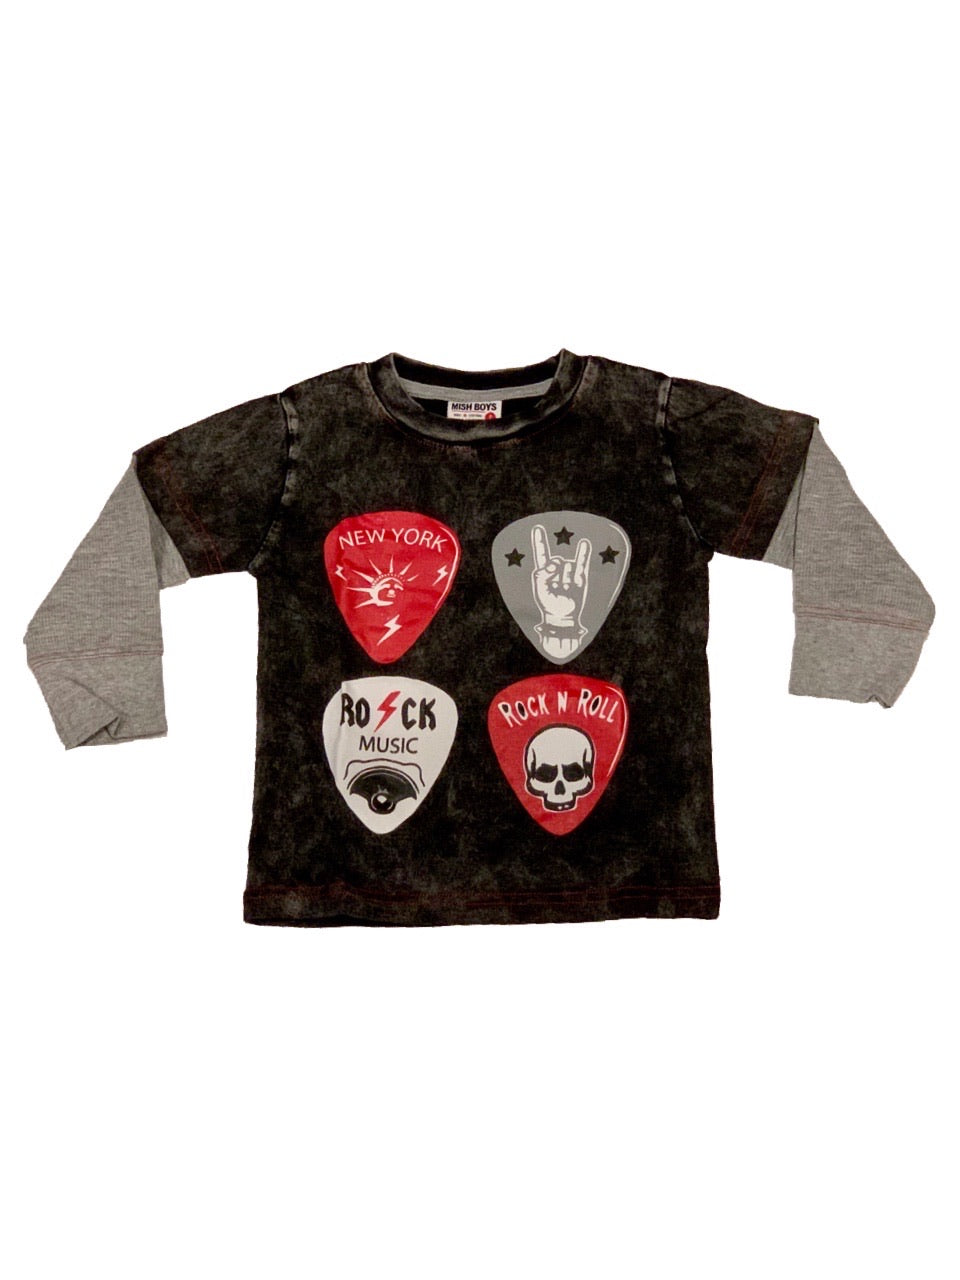 Mish Mish Guitar Picks Black Enzyme With Heather Thermal Sleeves